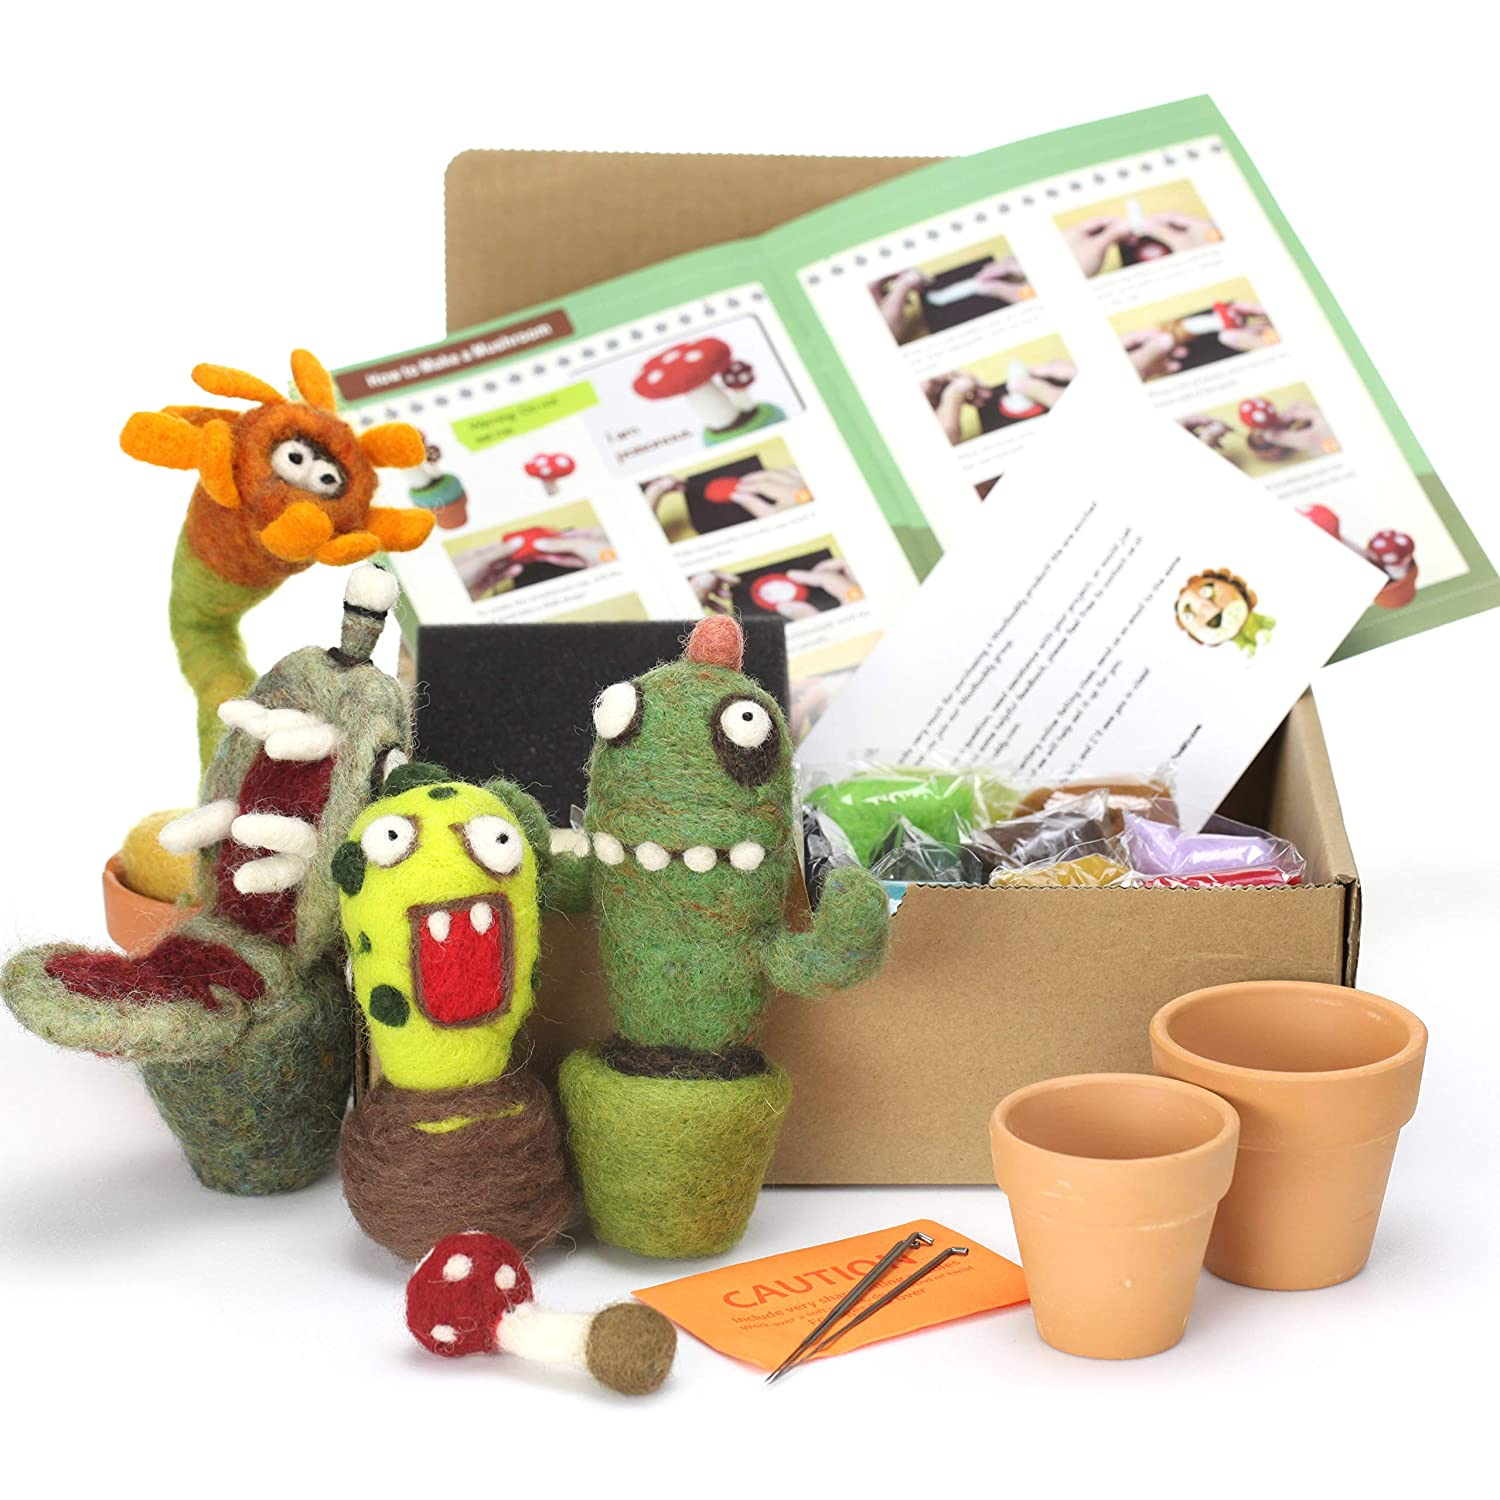 Woolbuddy Needle Felting Cactus Kit - Make 4+ Cactus, Clay pots Included, Felting Foam Mat, 4 Needles, Instruction & Videos- Great for Arts & Crafts & Easy for Beginners